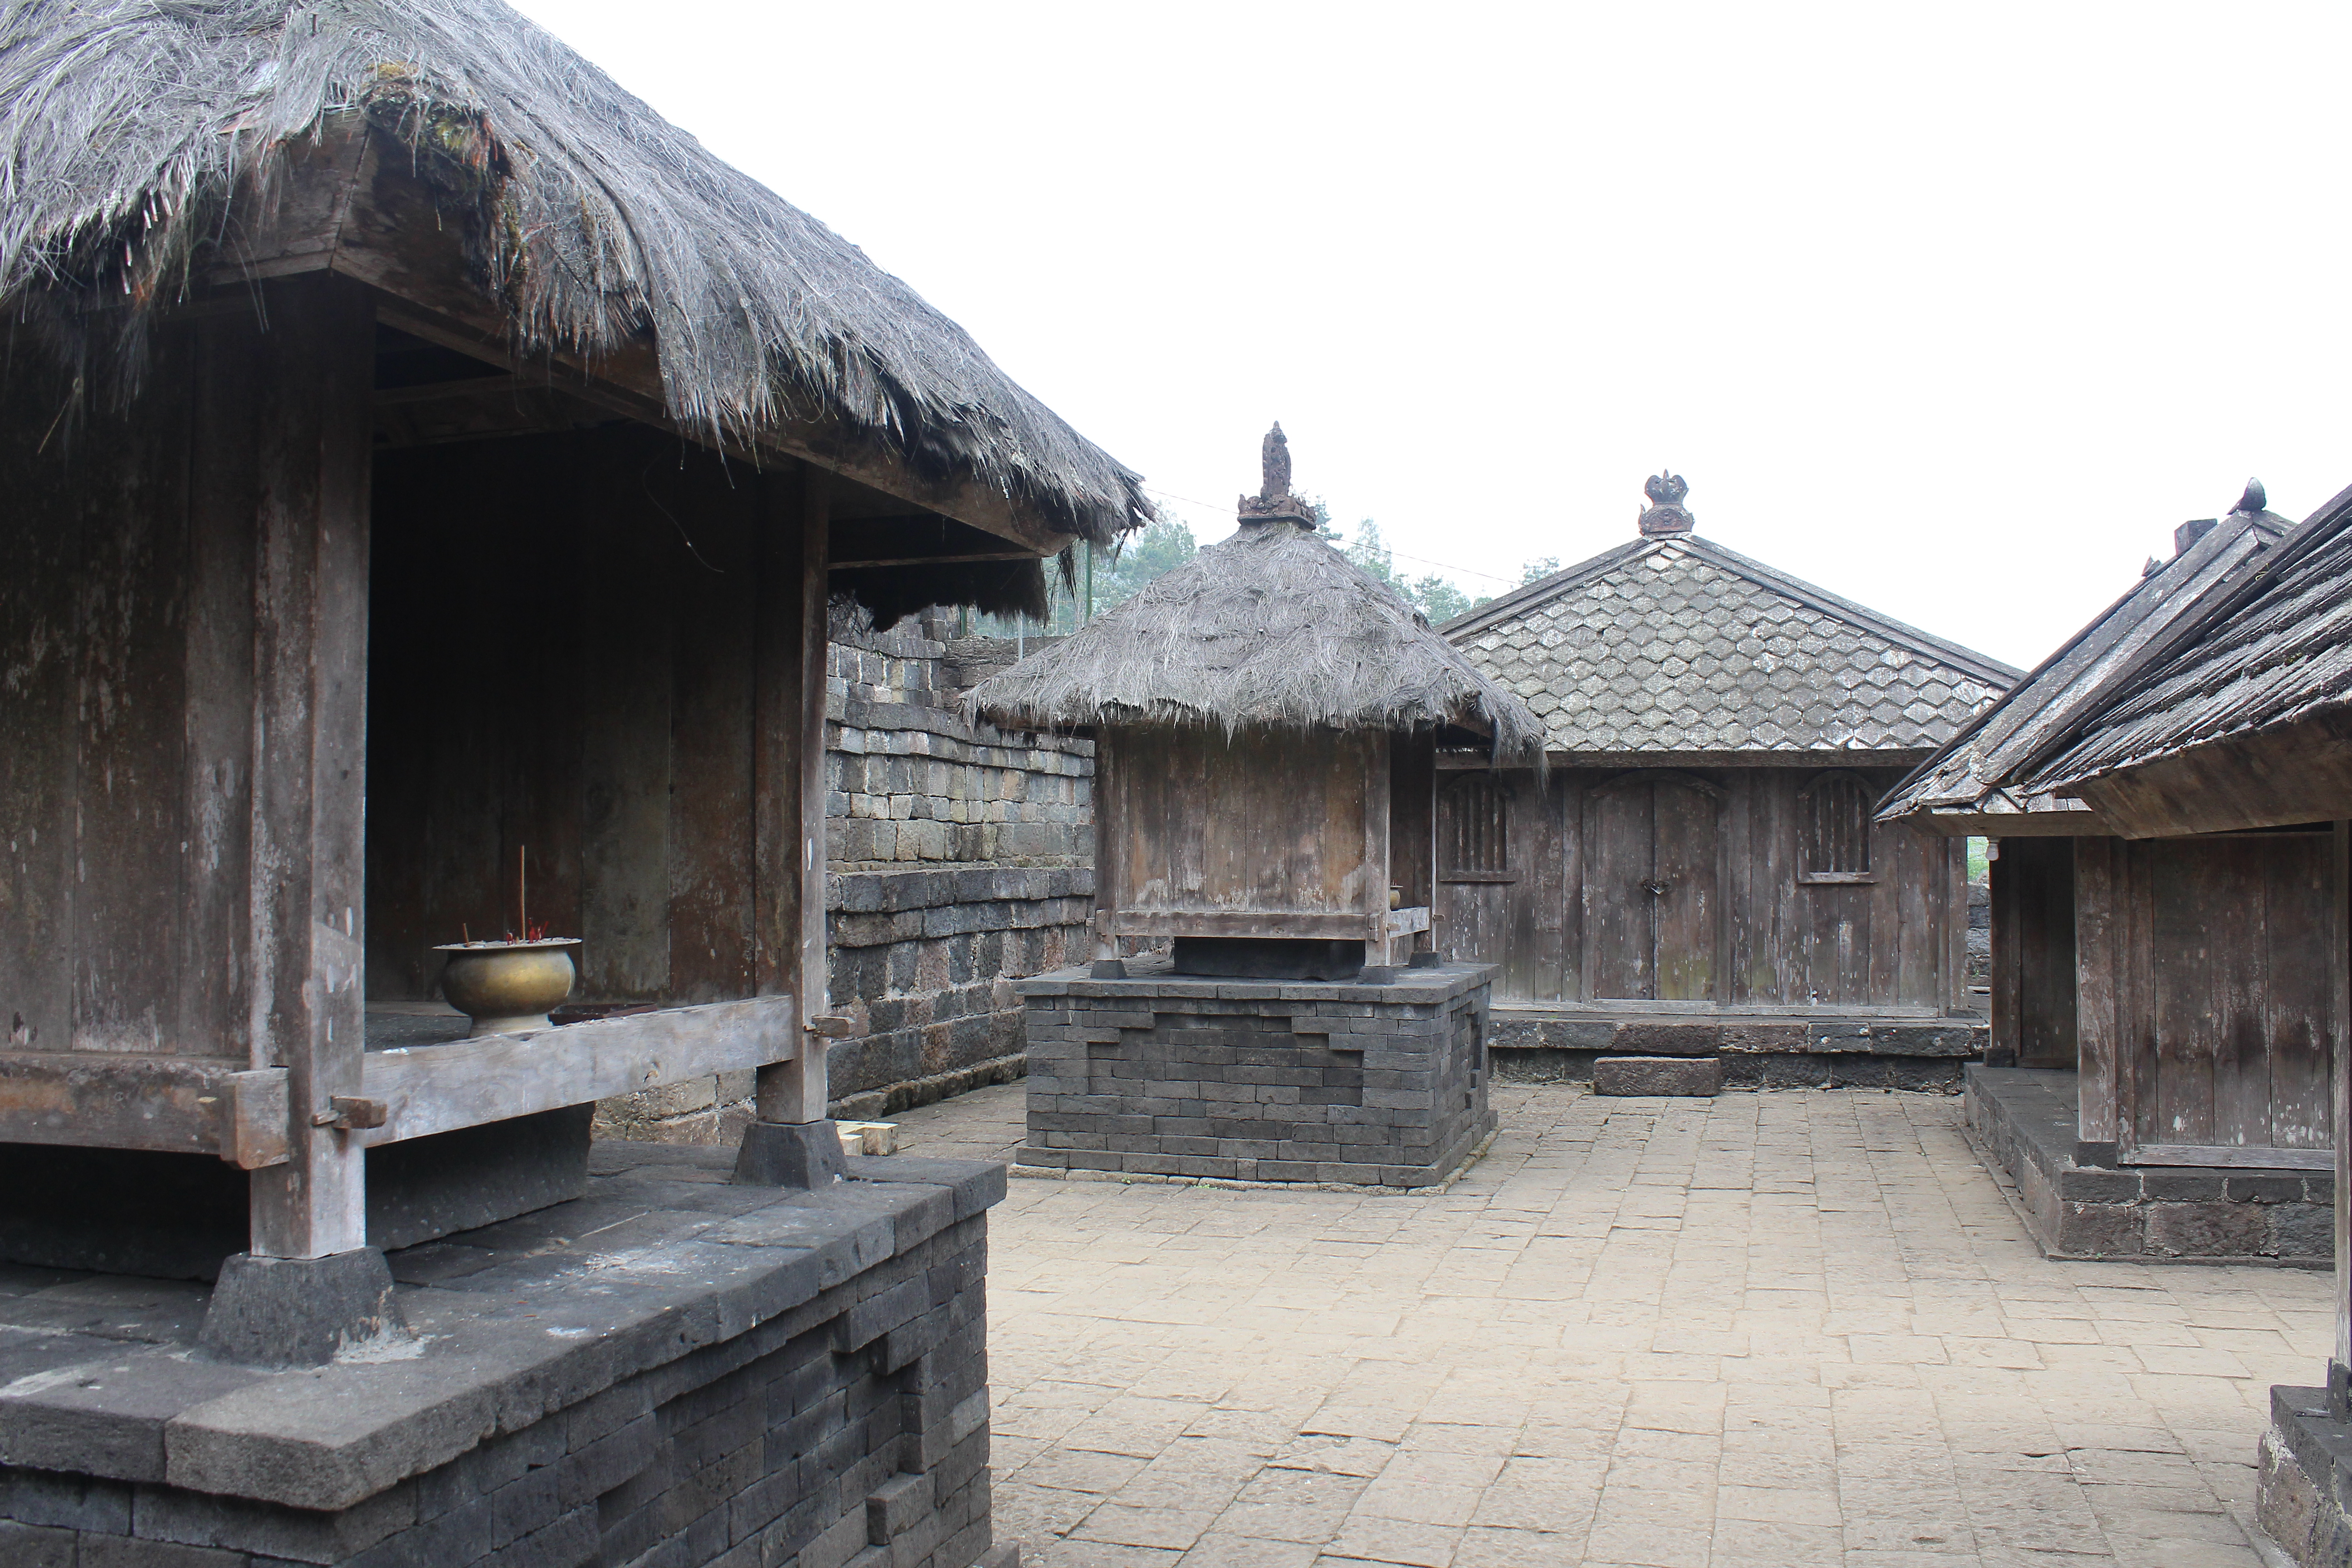 Thatch-roofed shrines and huts with wooden walls